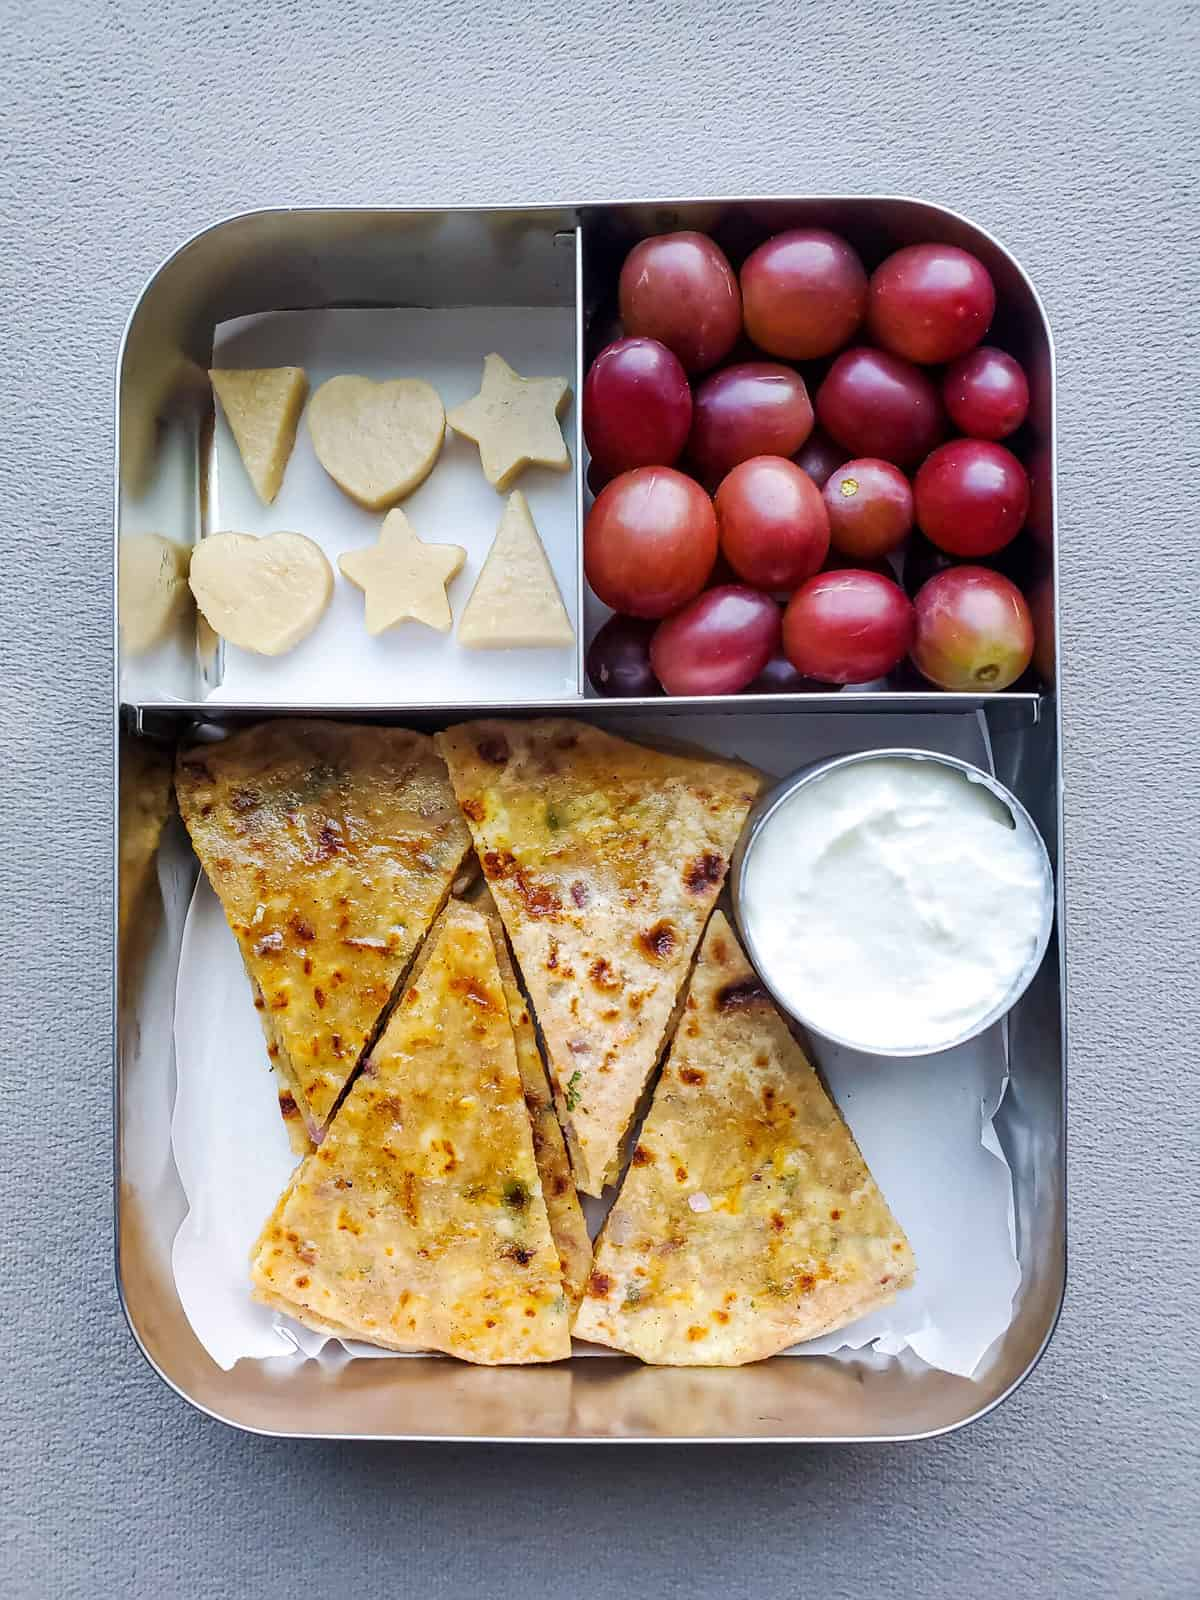 Aloo Paratha with grapes and Indian sweet in stainless steel  lunchbox